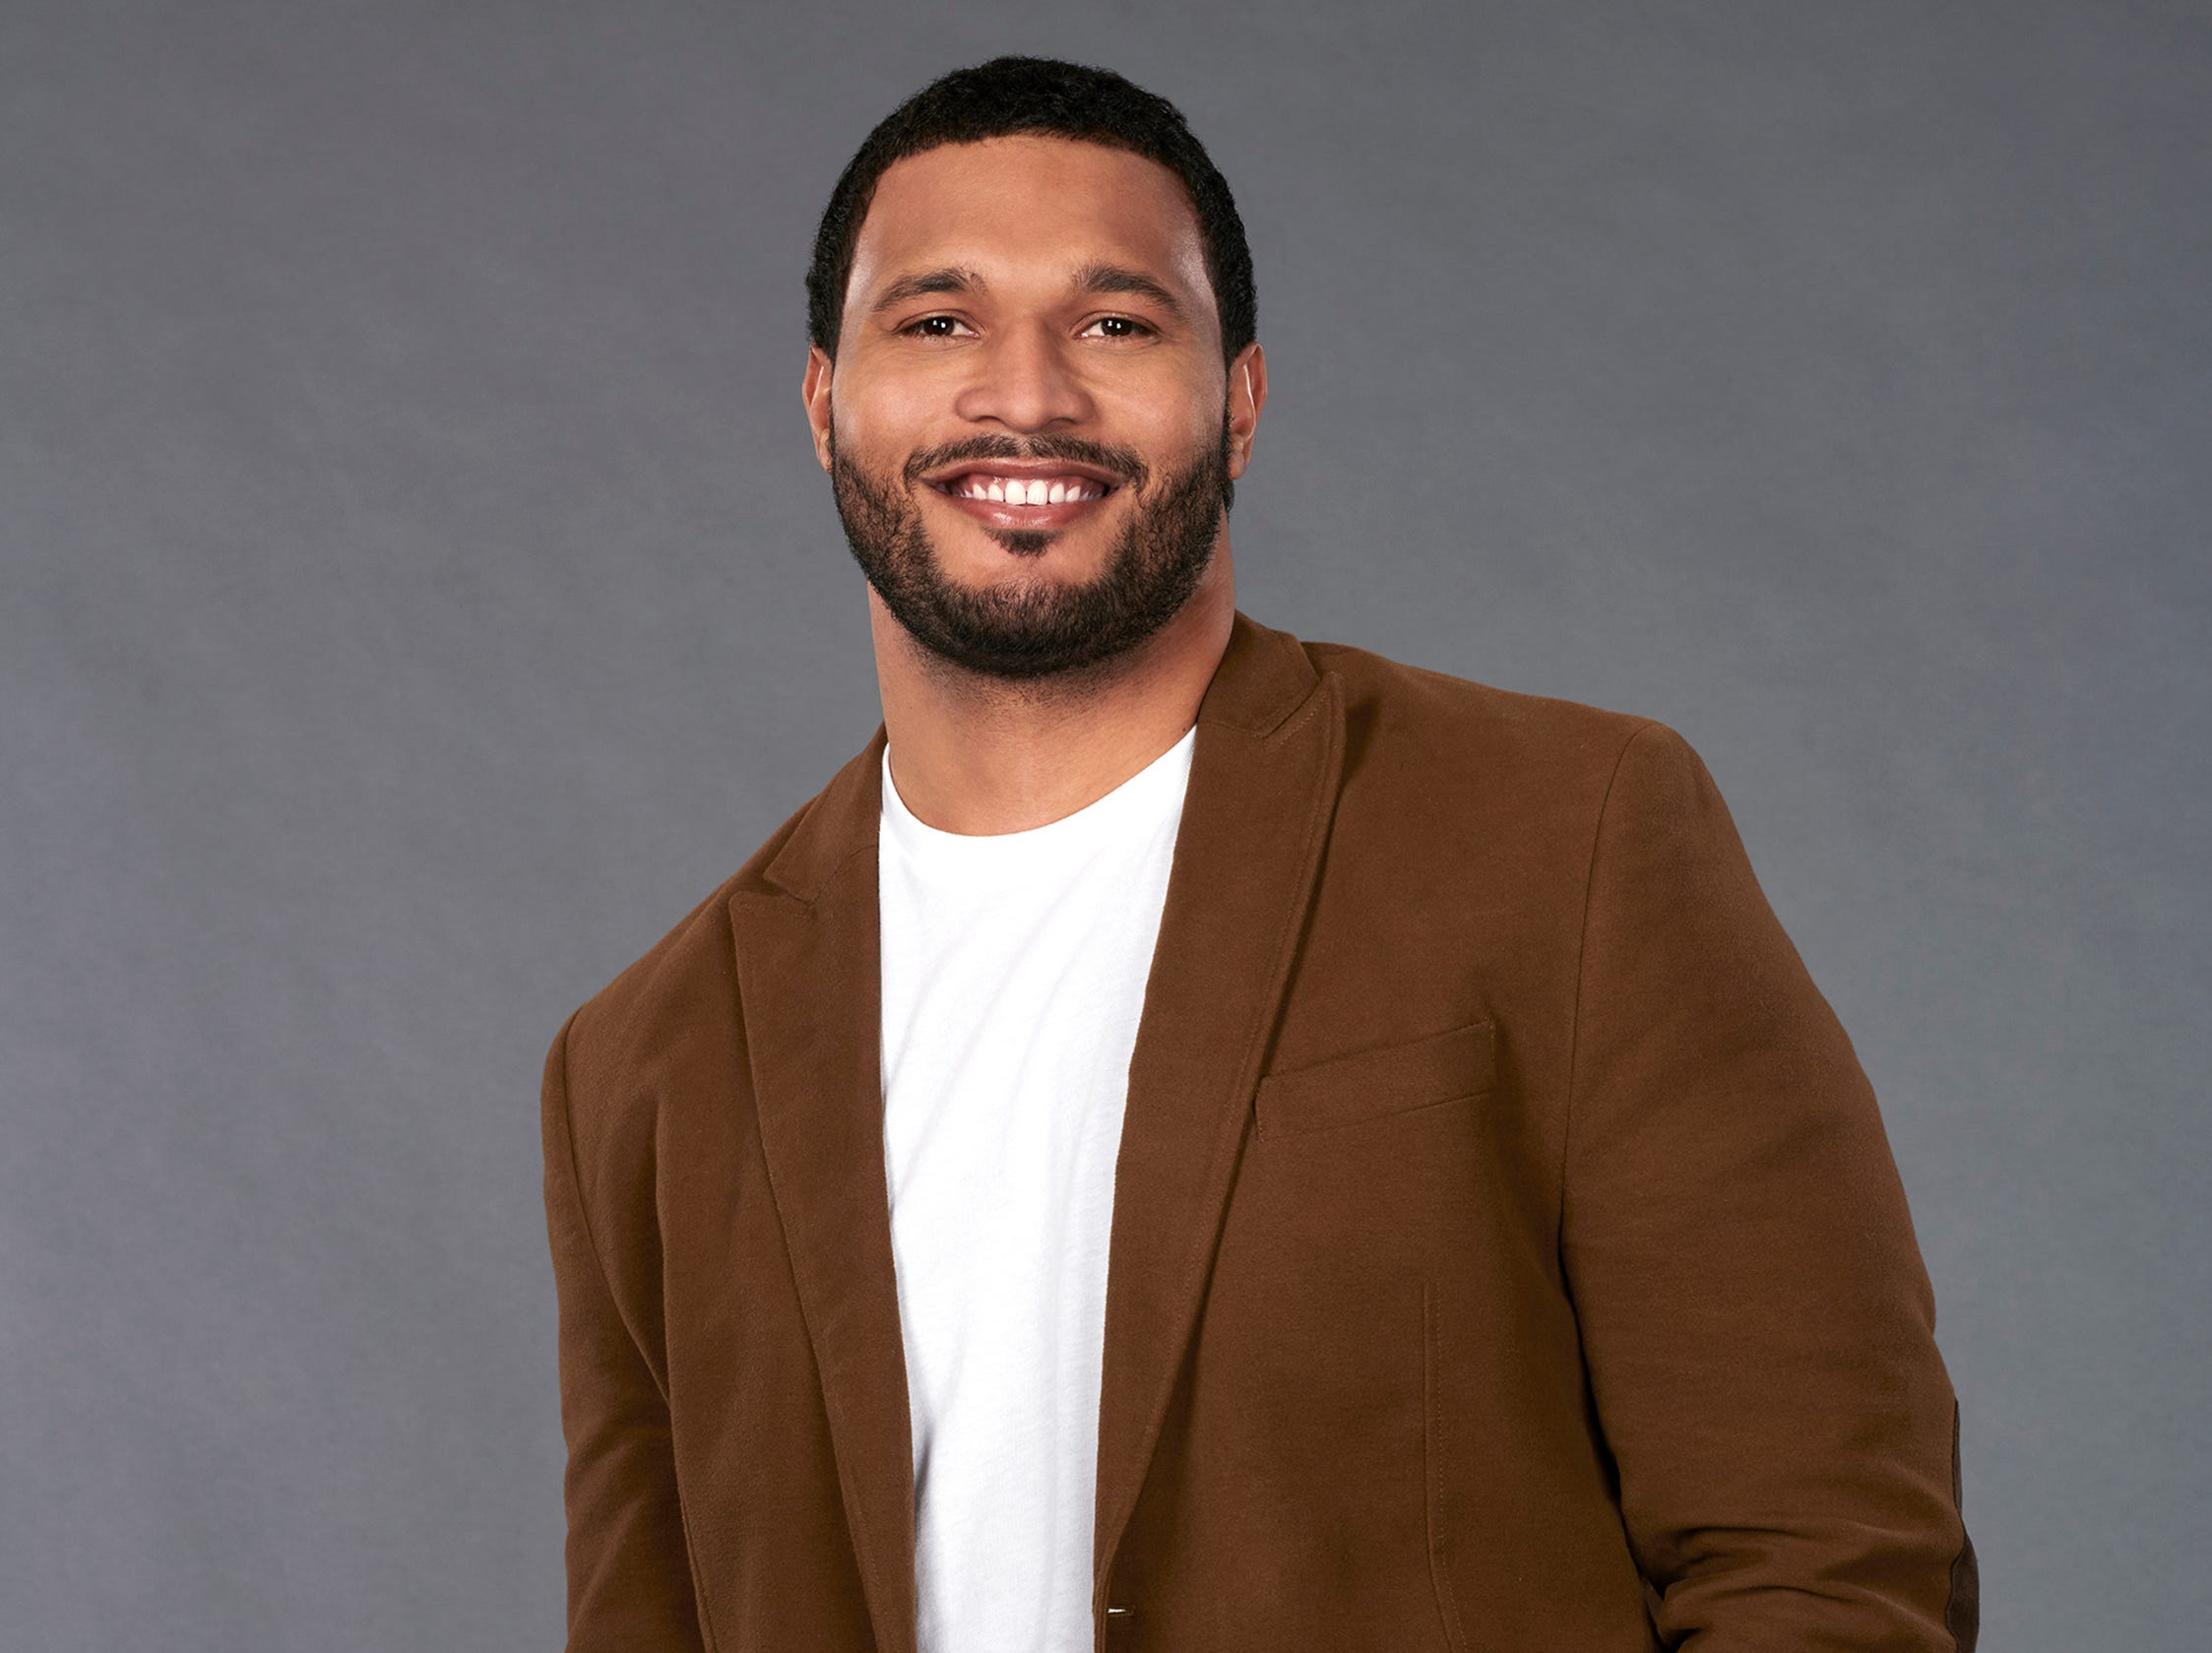 """The Bachelorette"" Season 23 contestant:  Daron, 25, Buckhead, Georgia, IT consultant"